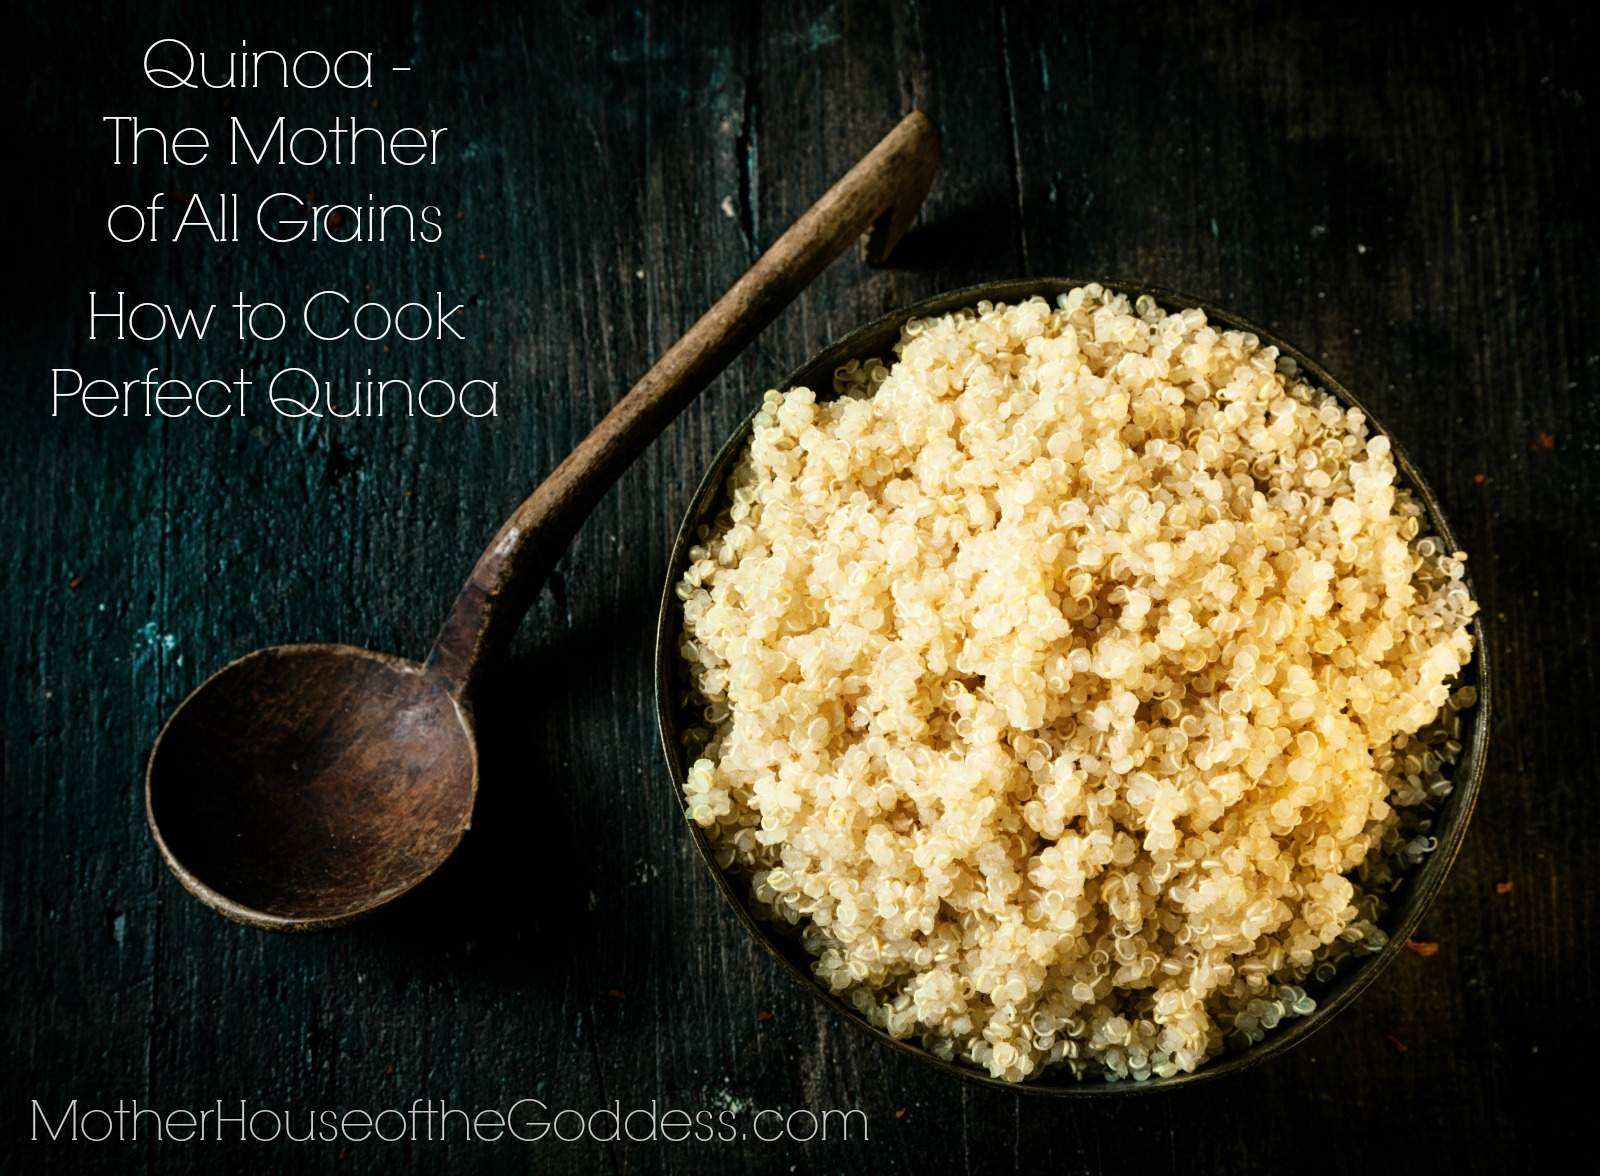 Quinoa The Mother Of All Grains And How To Cook Perfect Quinoa Kimberly  Moore For Motherhouse